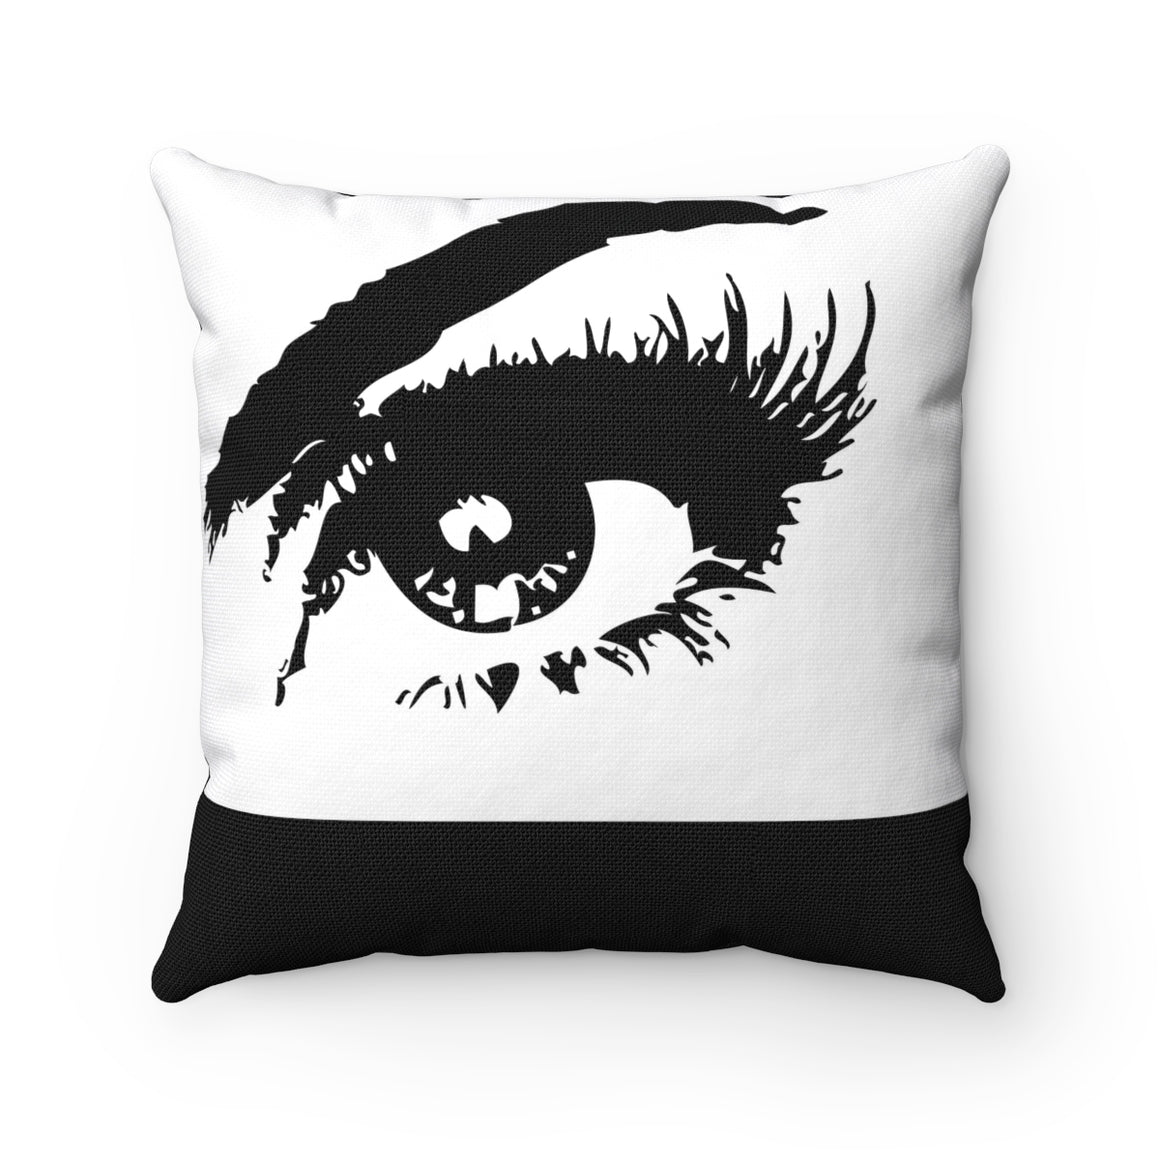 My Fabulous Style Beautiful Eye Got My Eye On You Square Throw Pillow-- Home Decor Fashion Throw Pillow